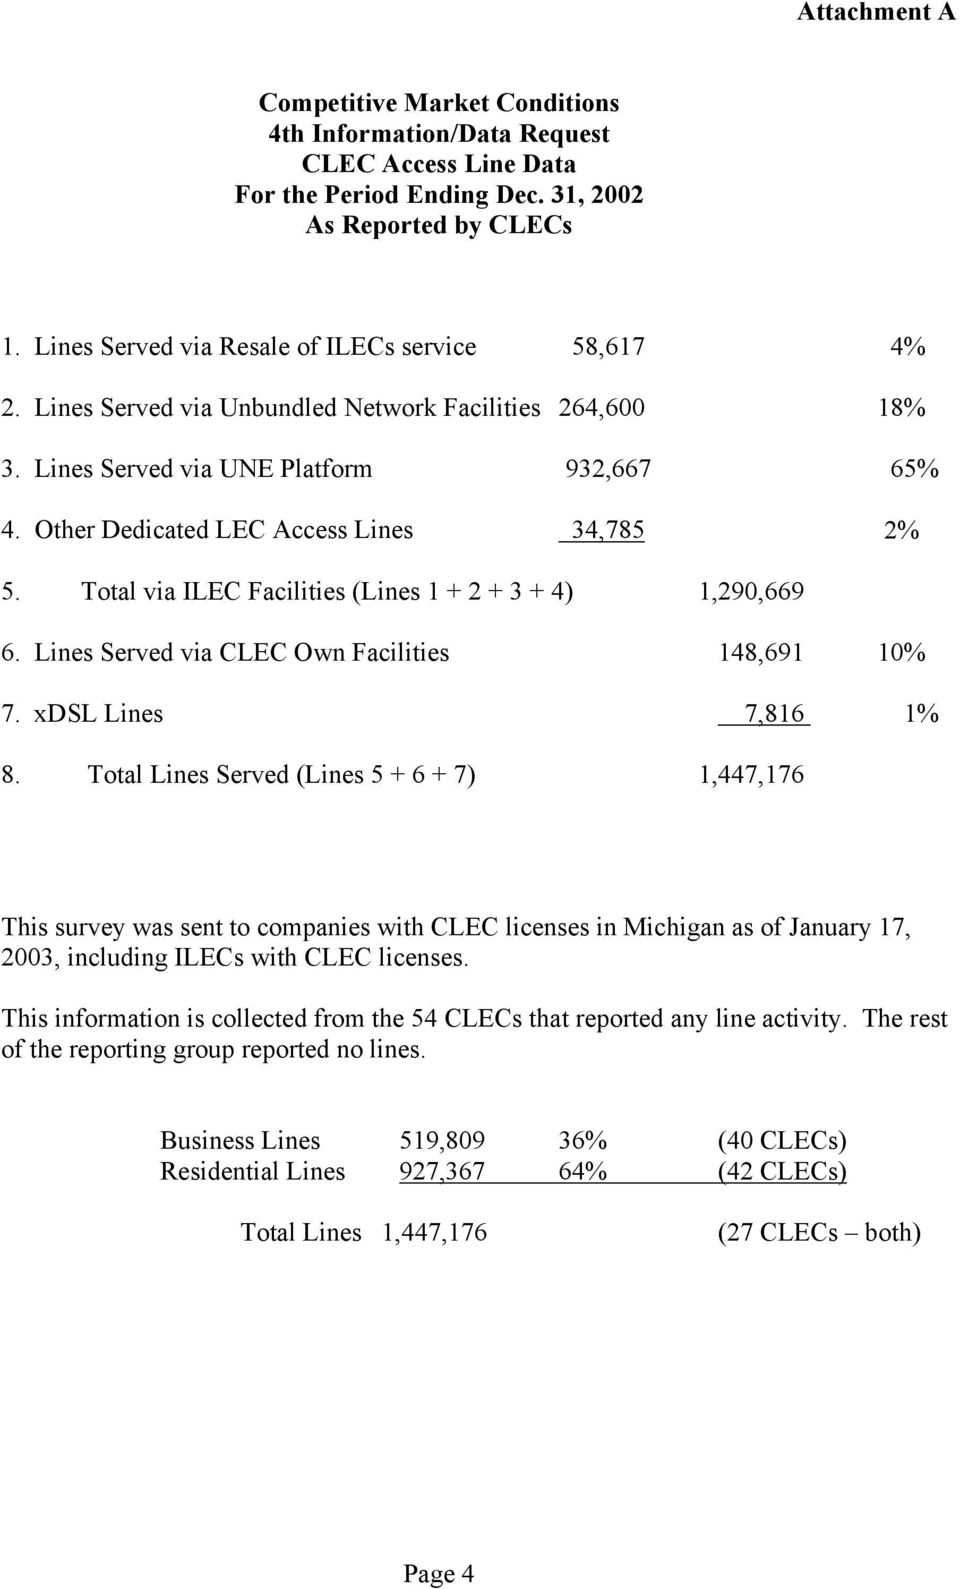 Other Dedicated LEC Access Lines 34,785 2% 5. Total via ILEC Facilities (Lines 1 + 2 + 3 + 4) 1,290,669 6. Lines Served via CLEC Own Facilities 148,691 10% 7. xdsl Lines 7,816 1% 8.